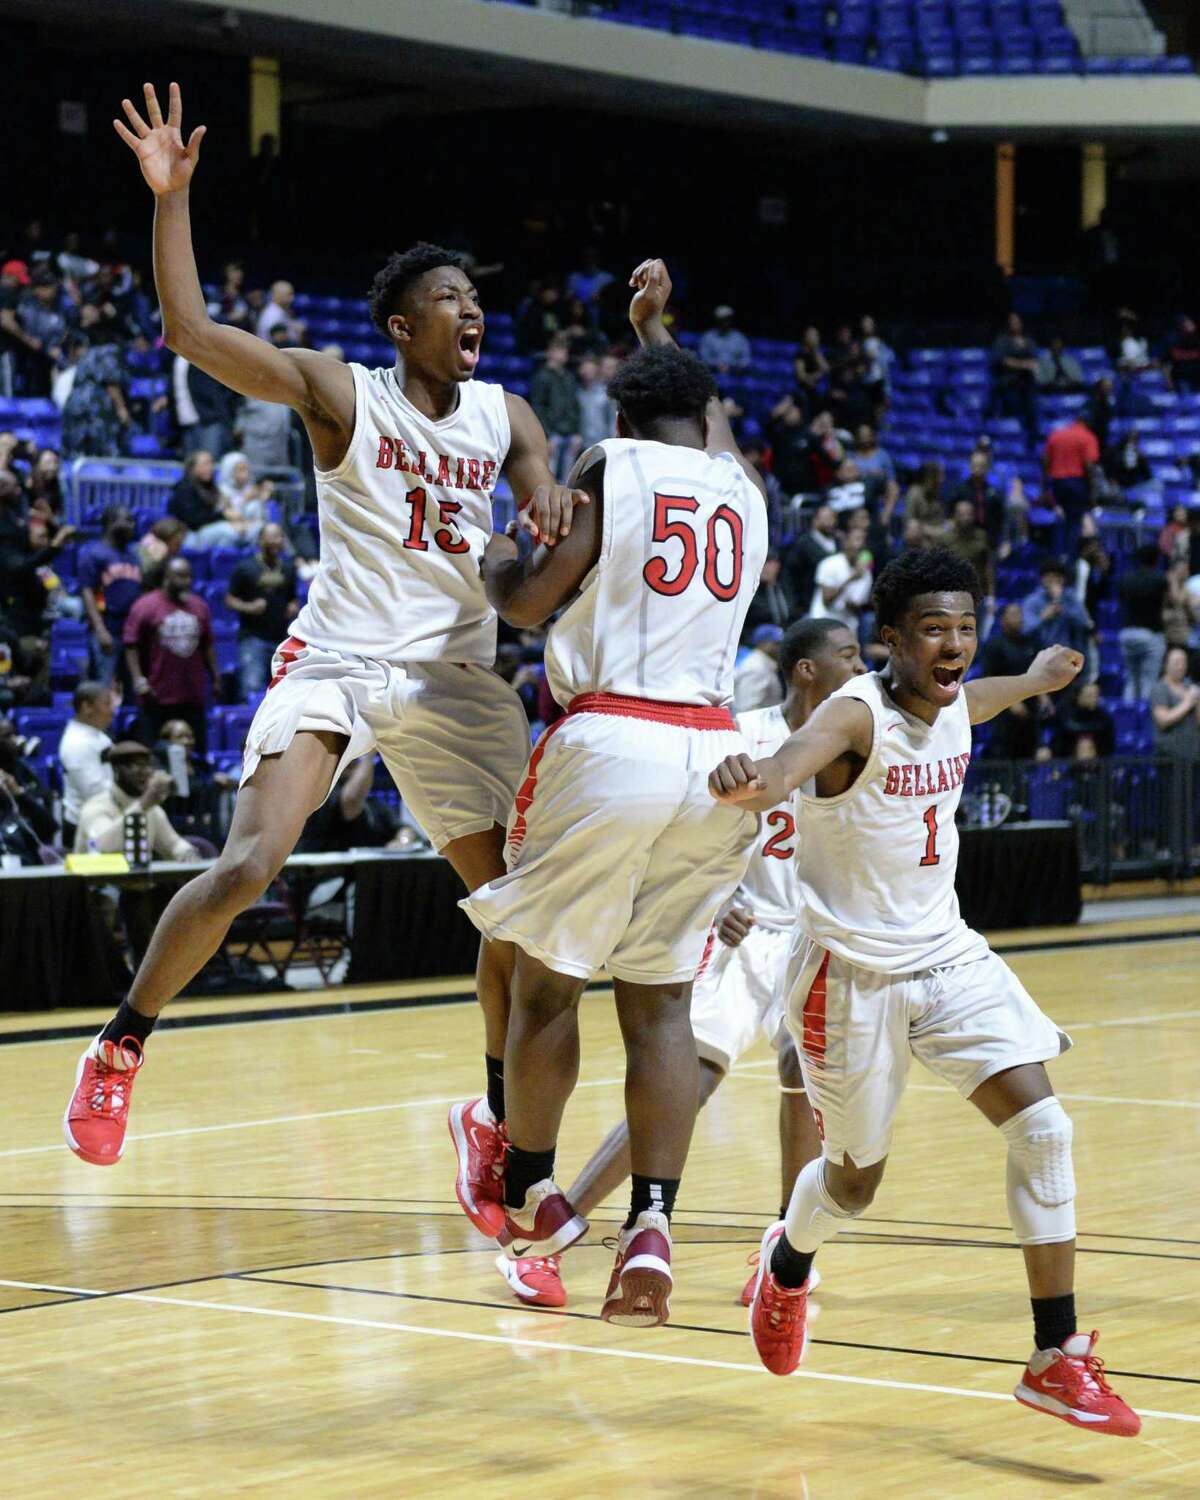 The Bellaire Cardinals celebrate their 61-59 victory over the Summer Creek Bulldogs in the Boys 6A Region III semifinal basketball game on Friday, March 6, 2020 at the Berry Center, Cypress, TX.